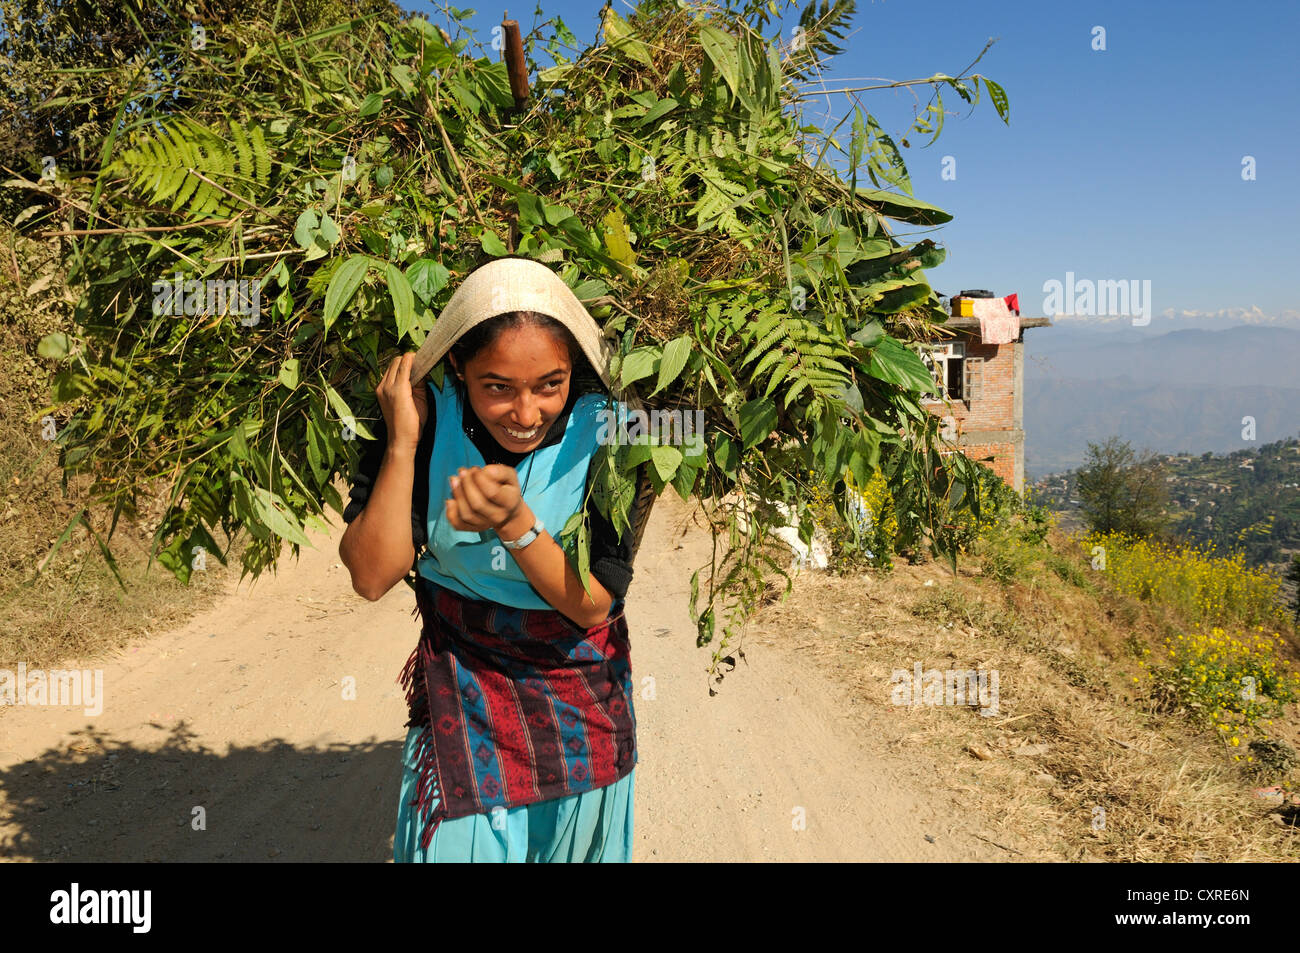 Nepali farmer carrying feeding grass, Kathmandu Valley, UNESCO World Heritage Site, Nepal, Asia - Stock Image